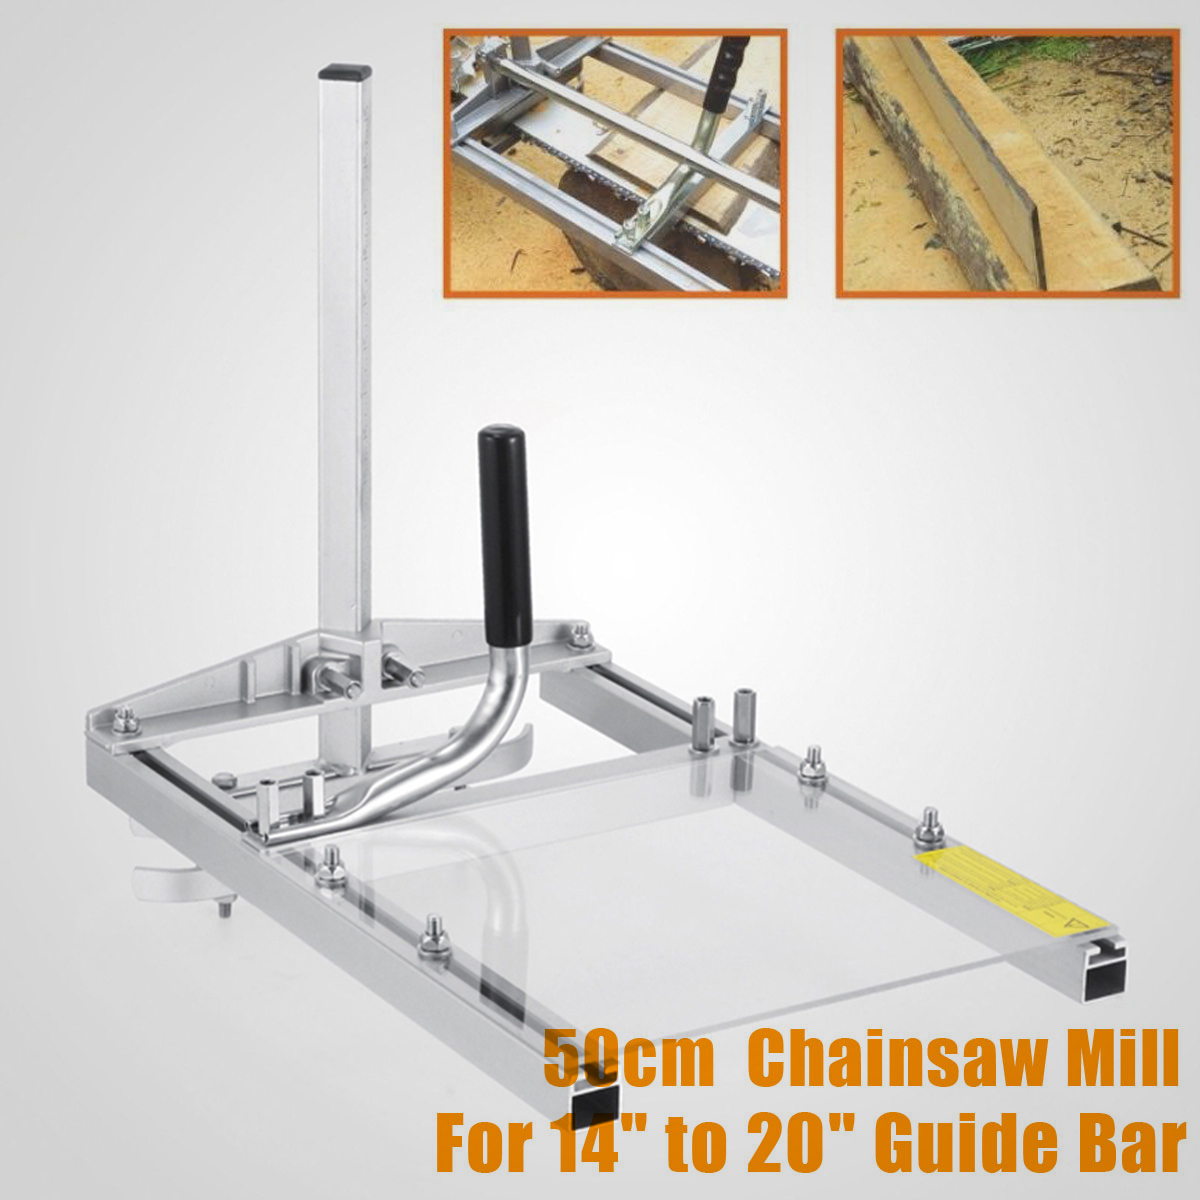 Doersupp NEW Chainsaw Guide Bar Portable Chainsaw Mill Planking Milling From 14 to 24 Guide Bar